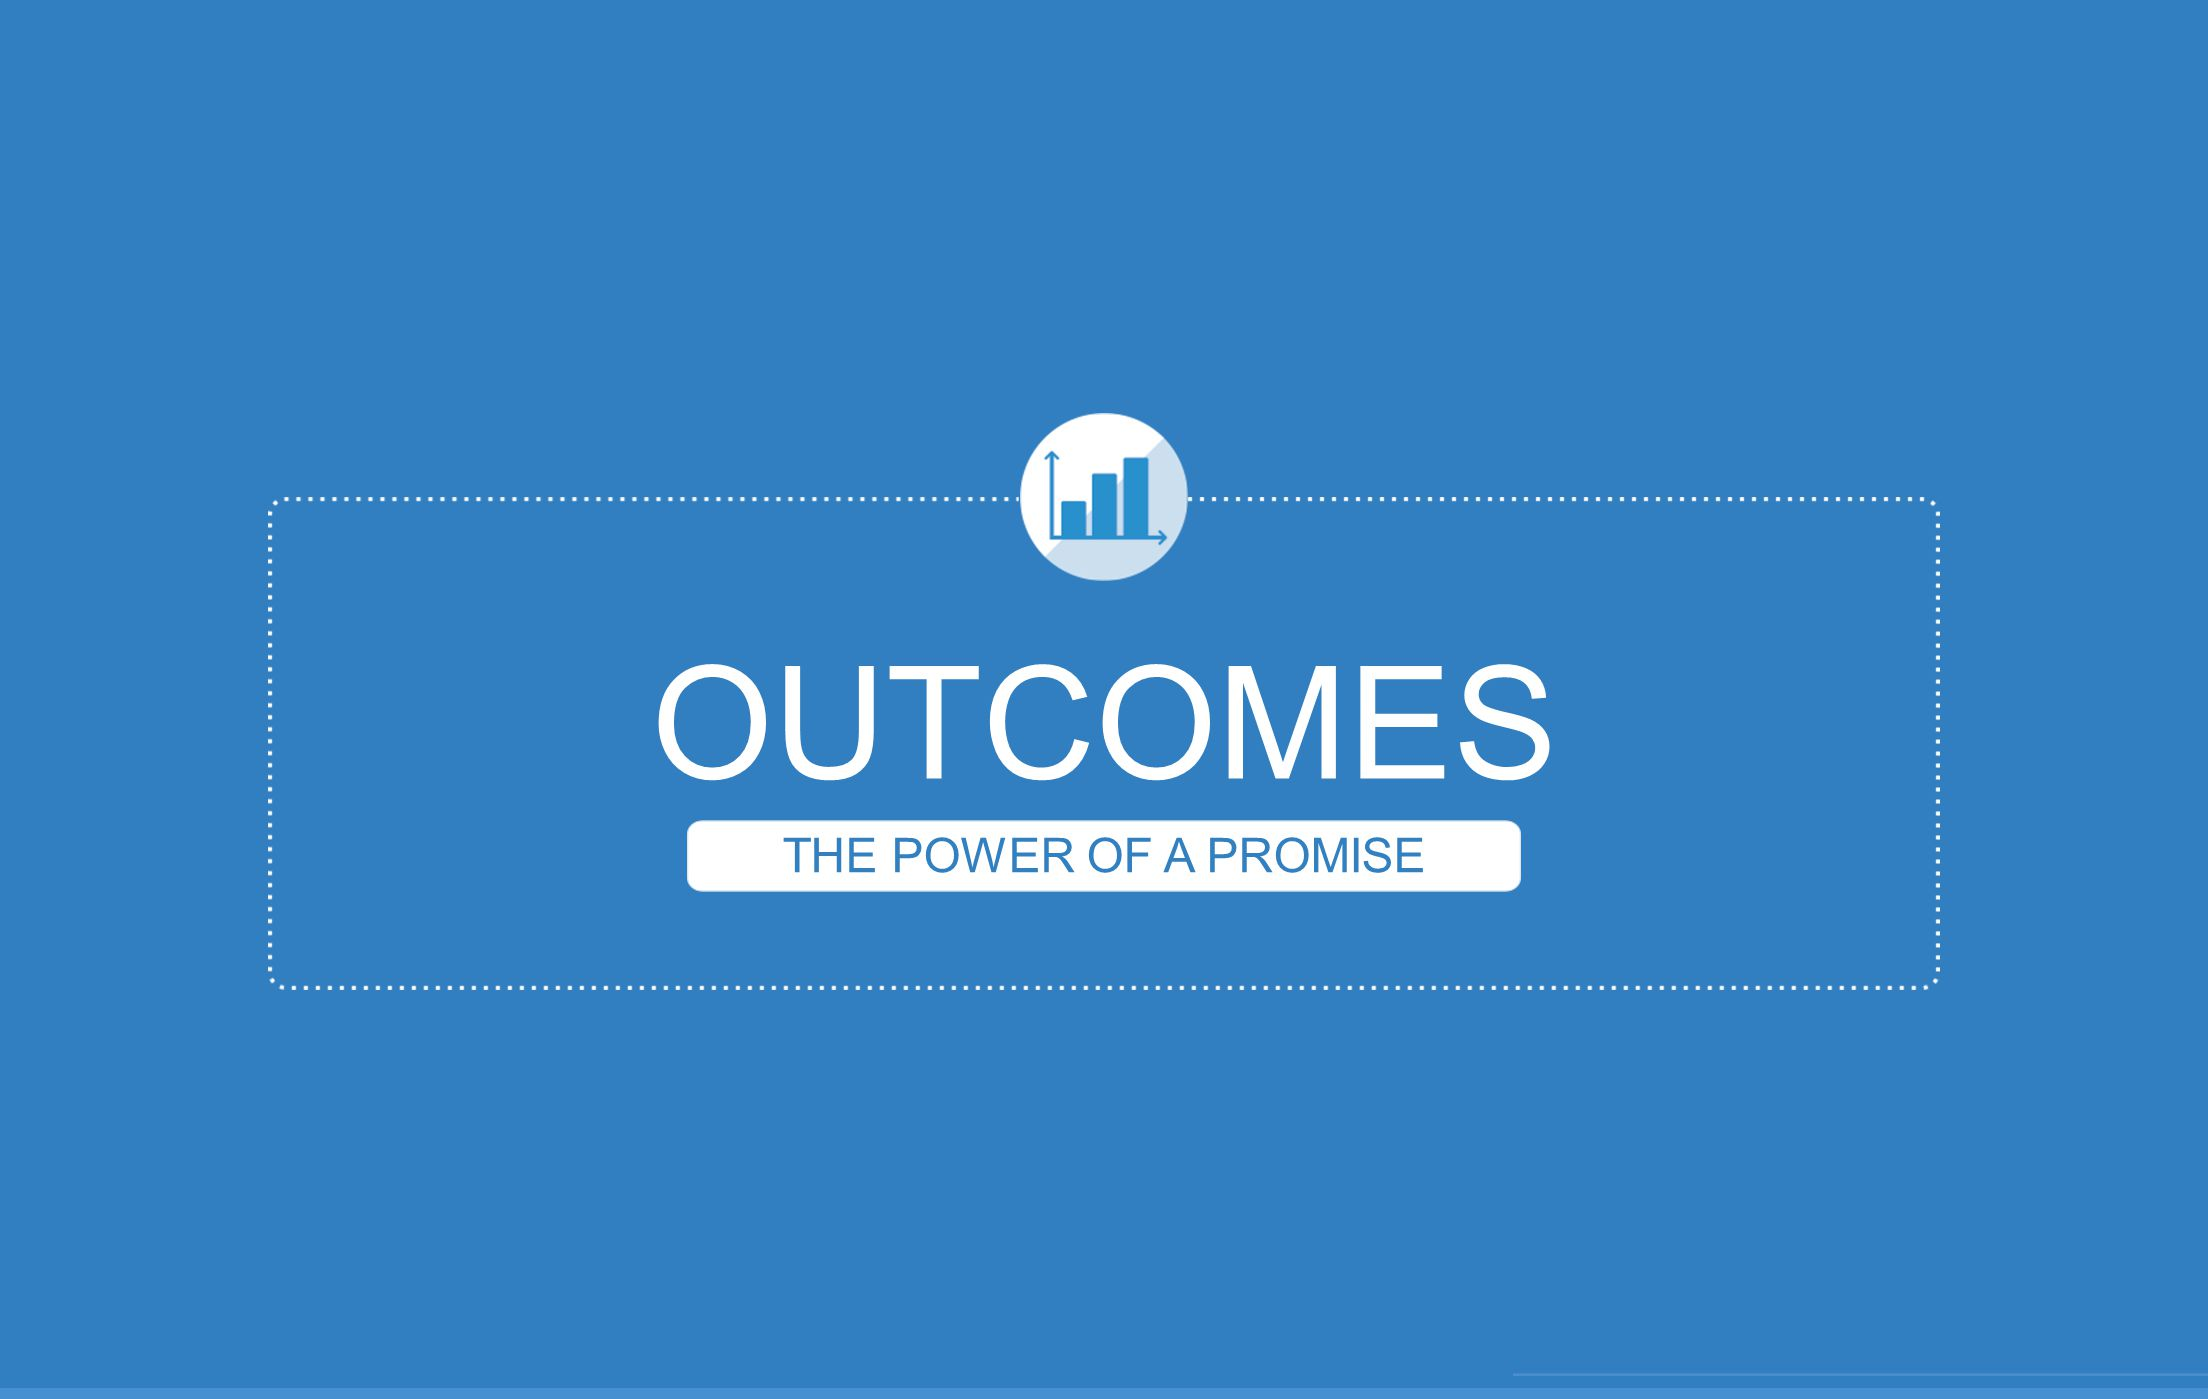 OUTCOMES THE POWER OF A PROMISE